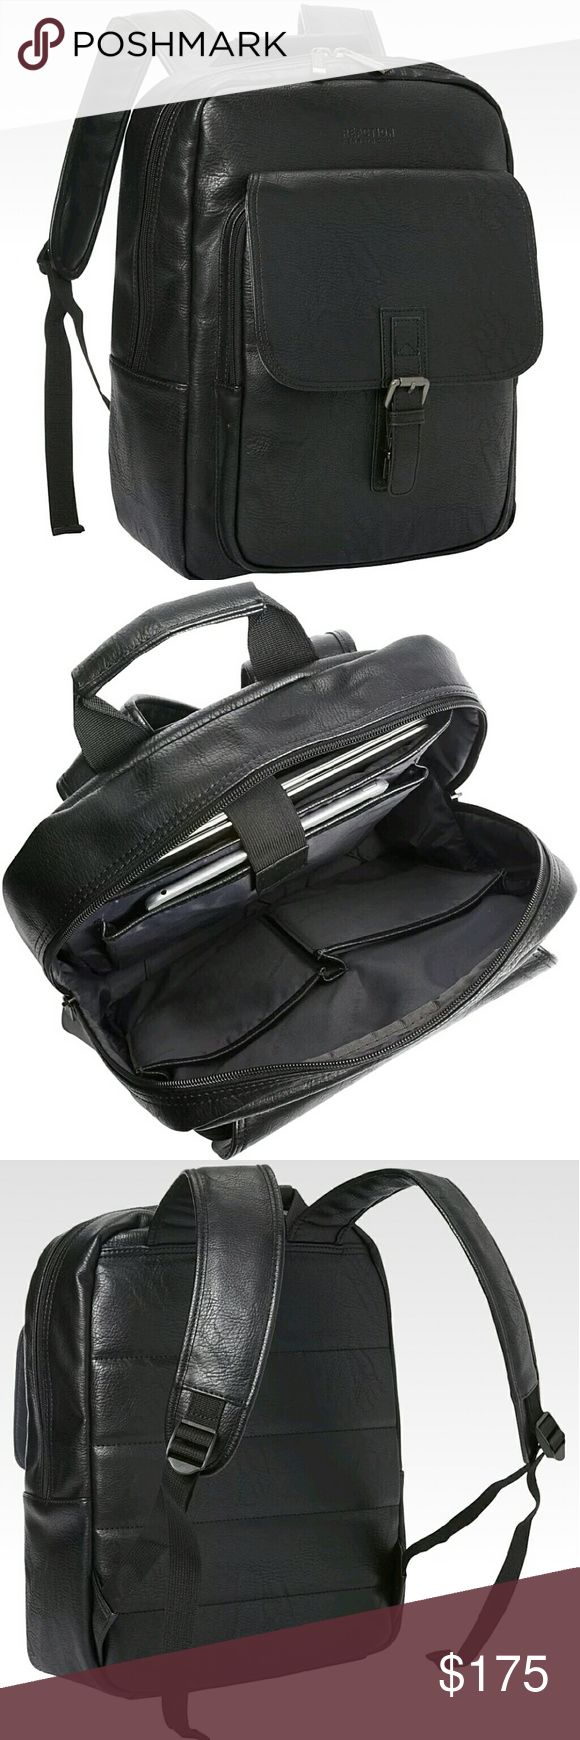 Kenneth cole leather backpack Brand new leather kenneth cole backpack Kenneth Cole Bags Backpacks